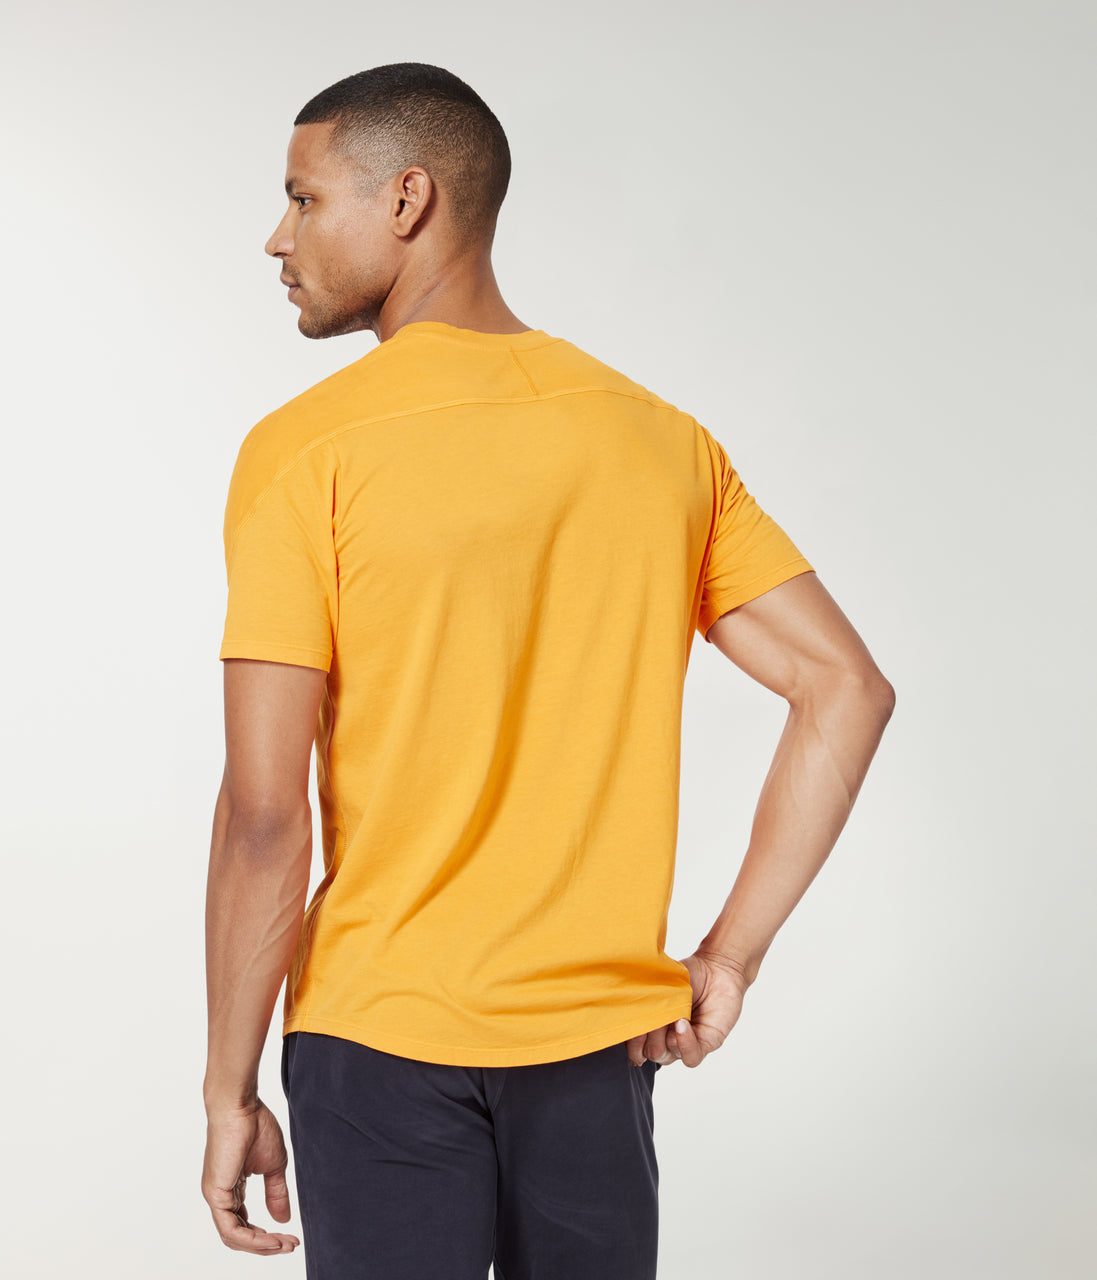 Premium Cotton Jersey Notch Neck Crew - Neon Orange - Good Man Brand - Premium Cotton Jersey Notch Neck Crew - Neon Orange